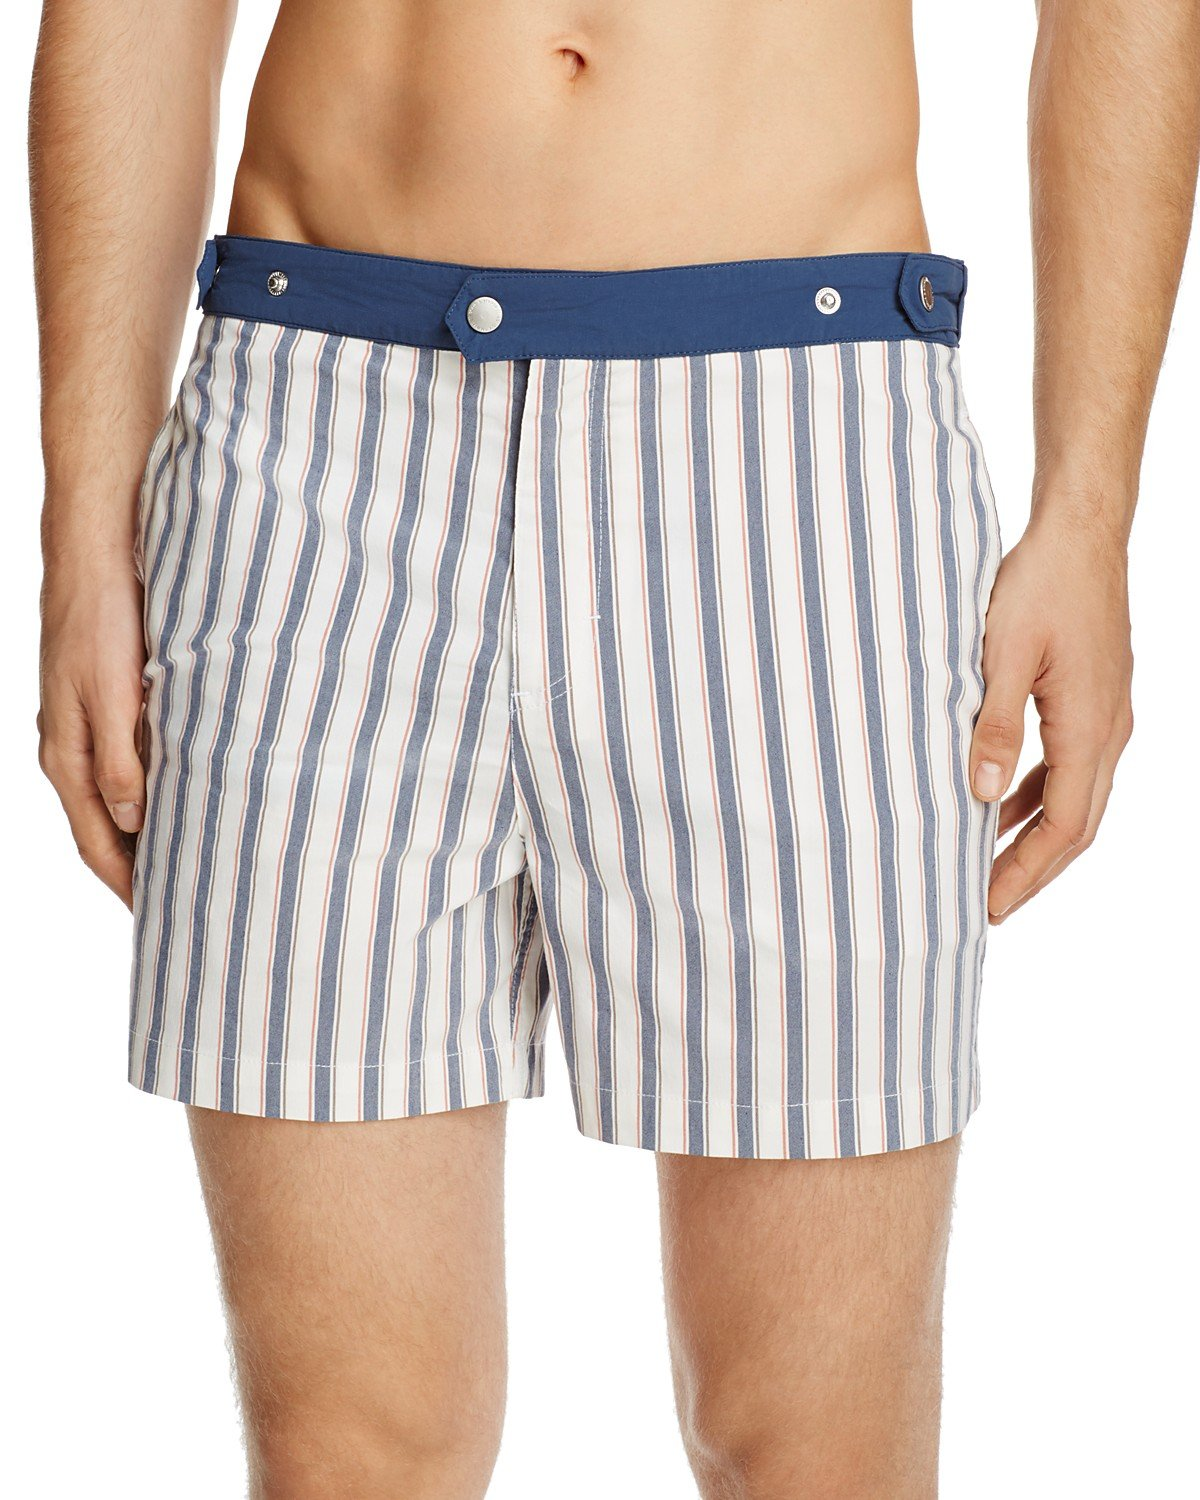 Solid & Striped Men's Kennedy Chesapeake Striped Swim Trunks (Small, Royal)